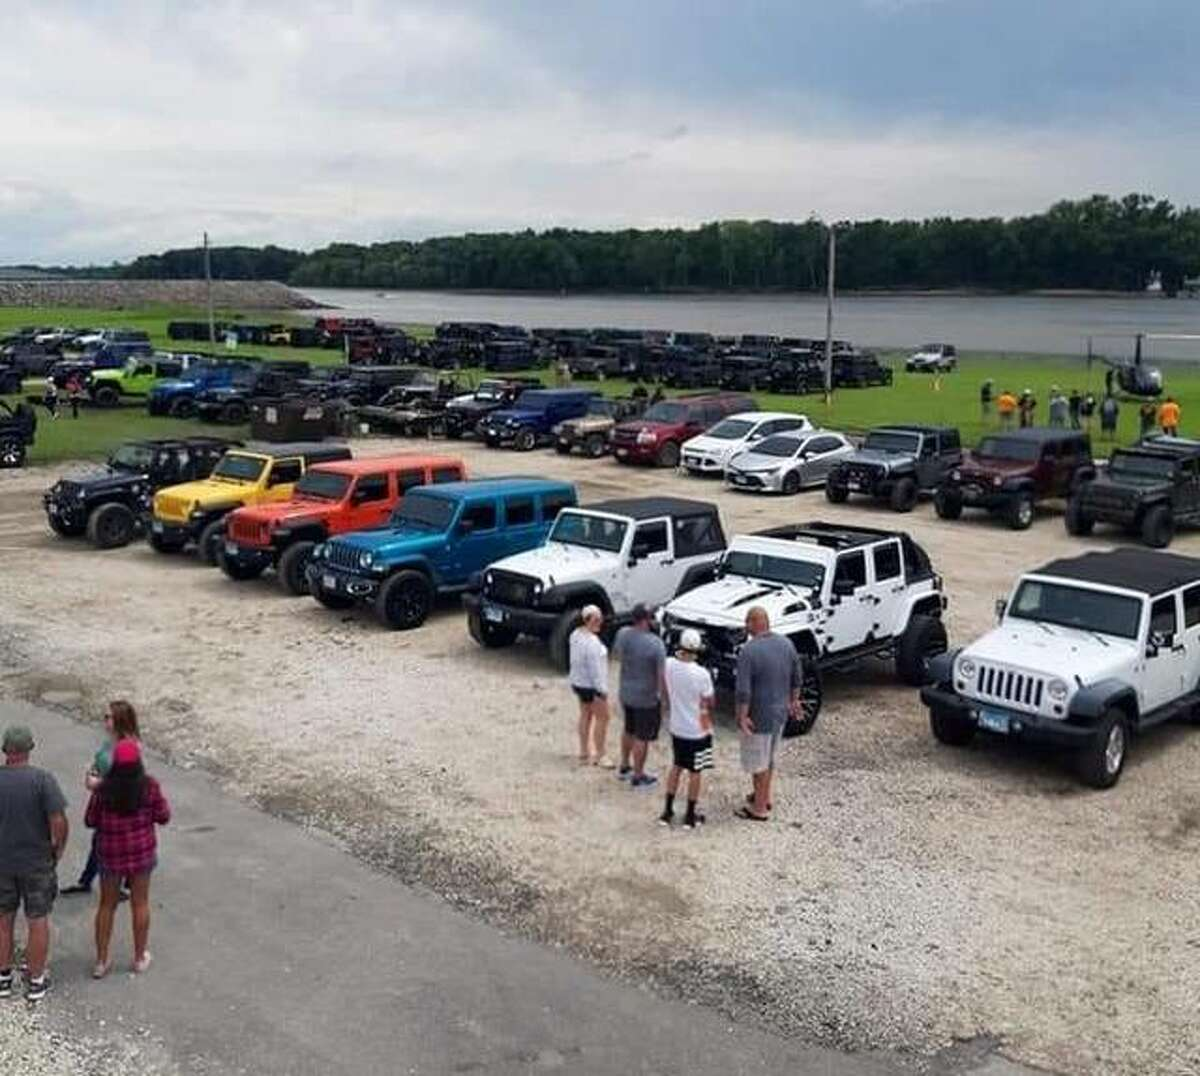 The Cassens River Road Jeep Run will begin at Cassens, 3333 IL-159, in Glen Carbon, at 8:30 a.m., and ends at the Hawg Pit, 821 W. Main St., in Grafton, Saturday, Aug. 21. Jeeps will begin pulling into the Hawg Pit around 11:30 a.m. Saturday. The event is expected to draw hundreds of Jeeps.